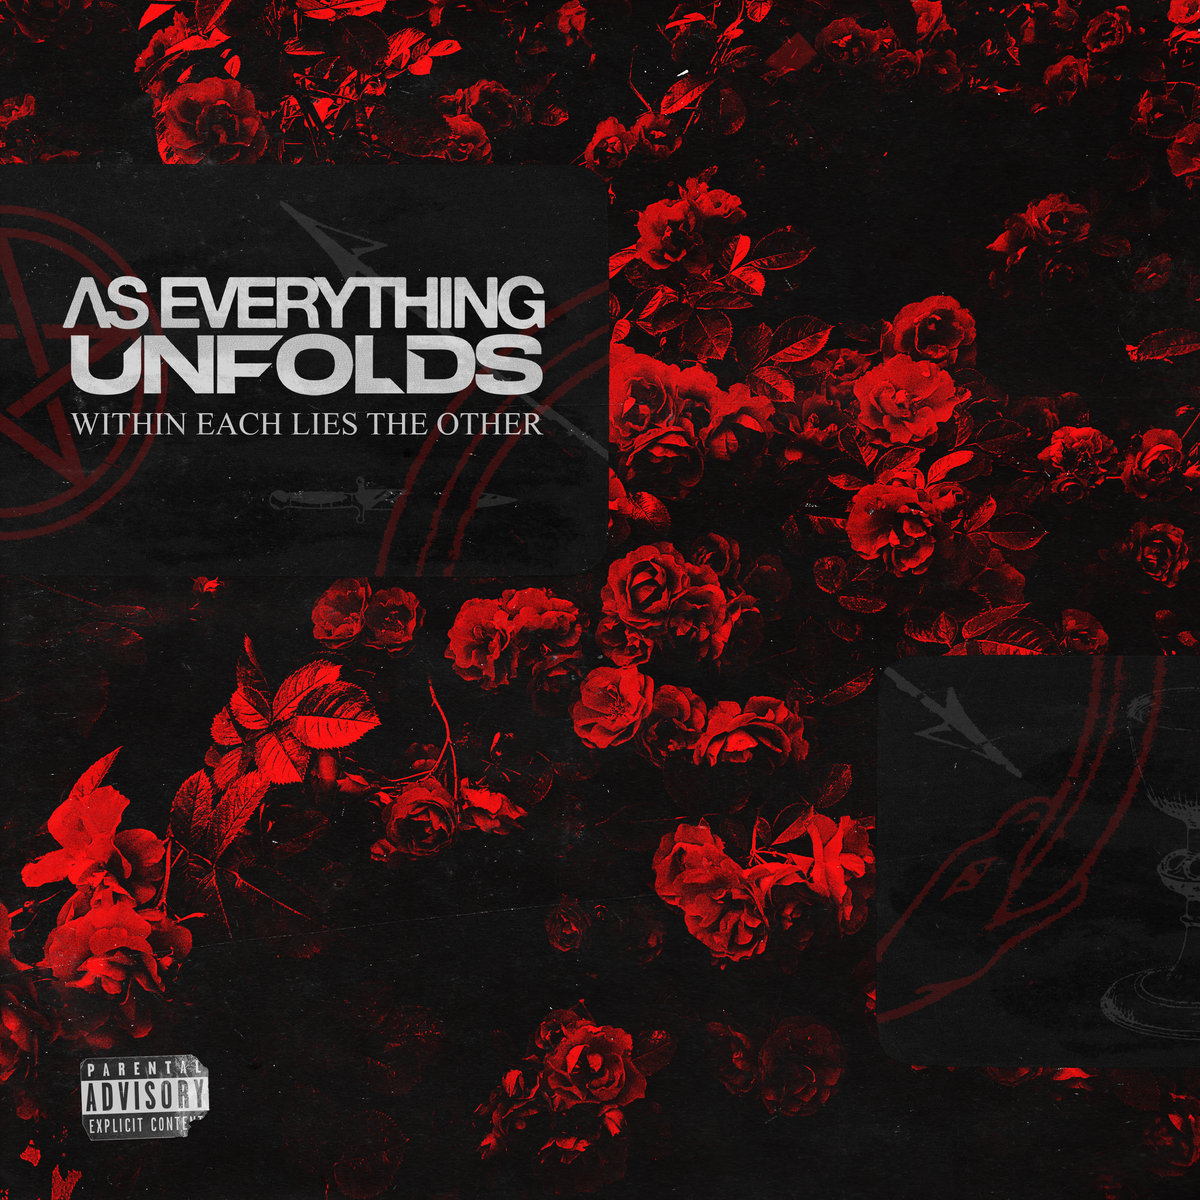 Within Each Lies The Other As Everything Unfolds Album Cover Artwork